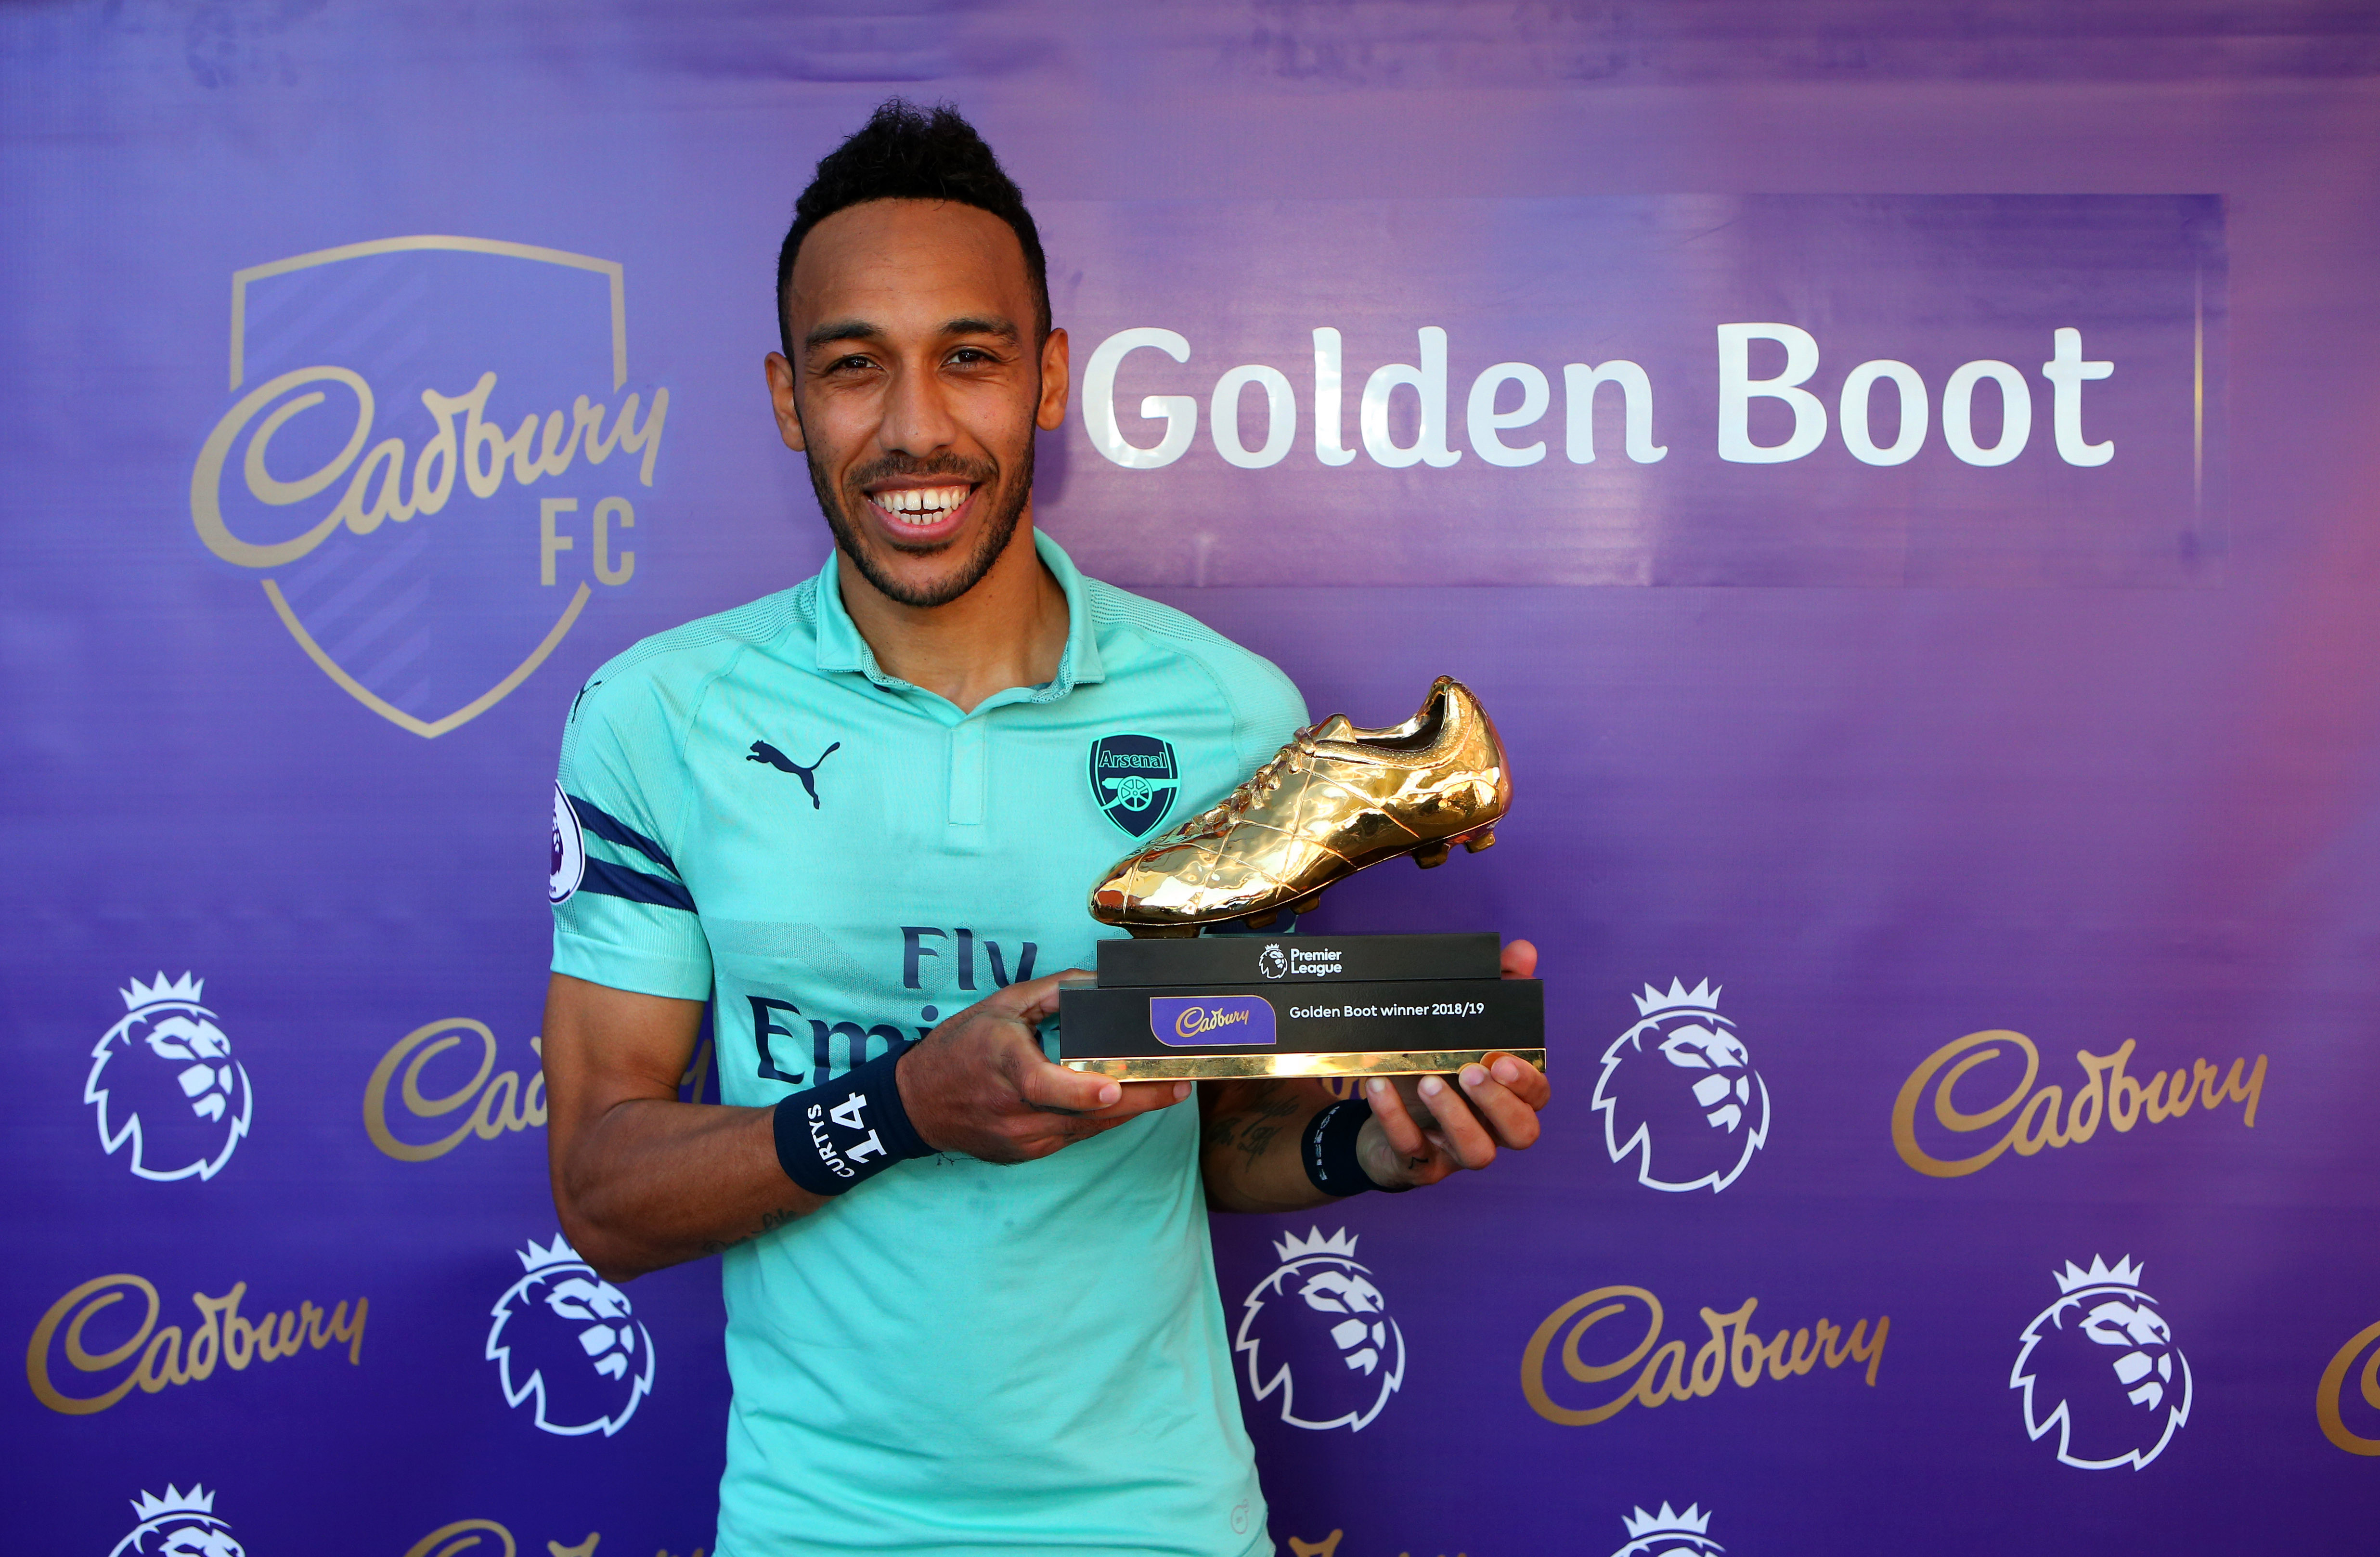 Pierre-Emerick Aubameyang with the Golden Boot